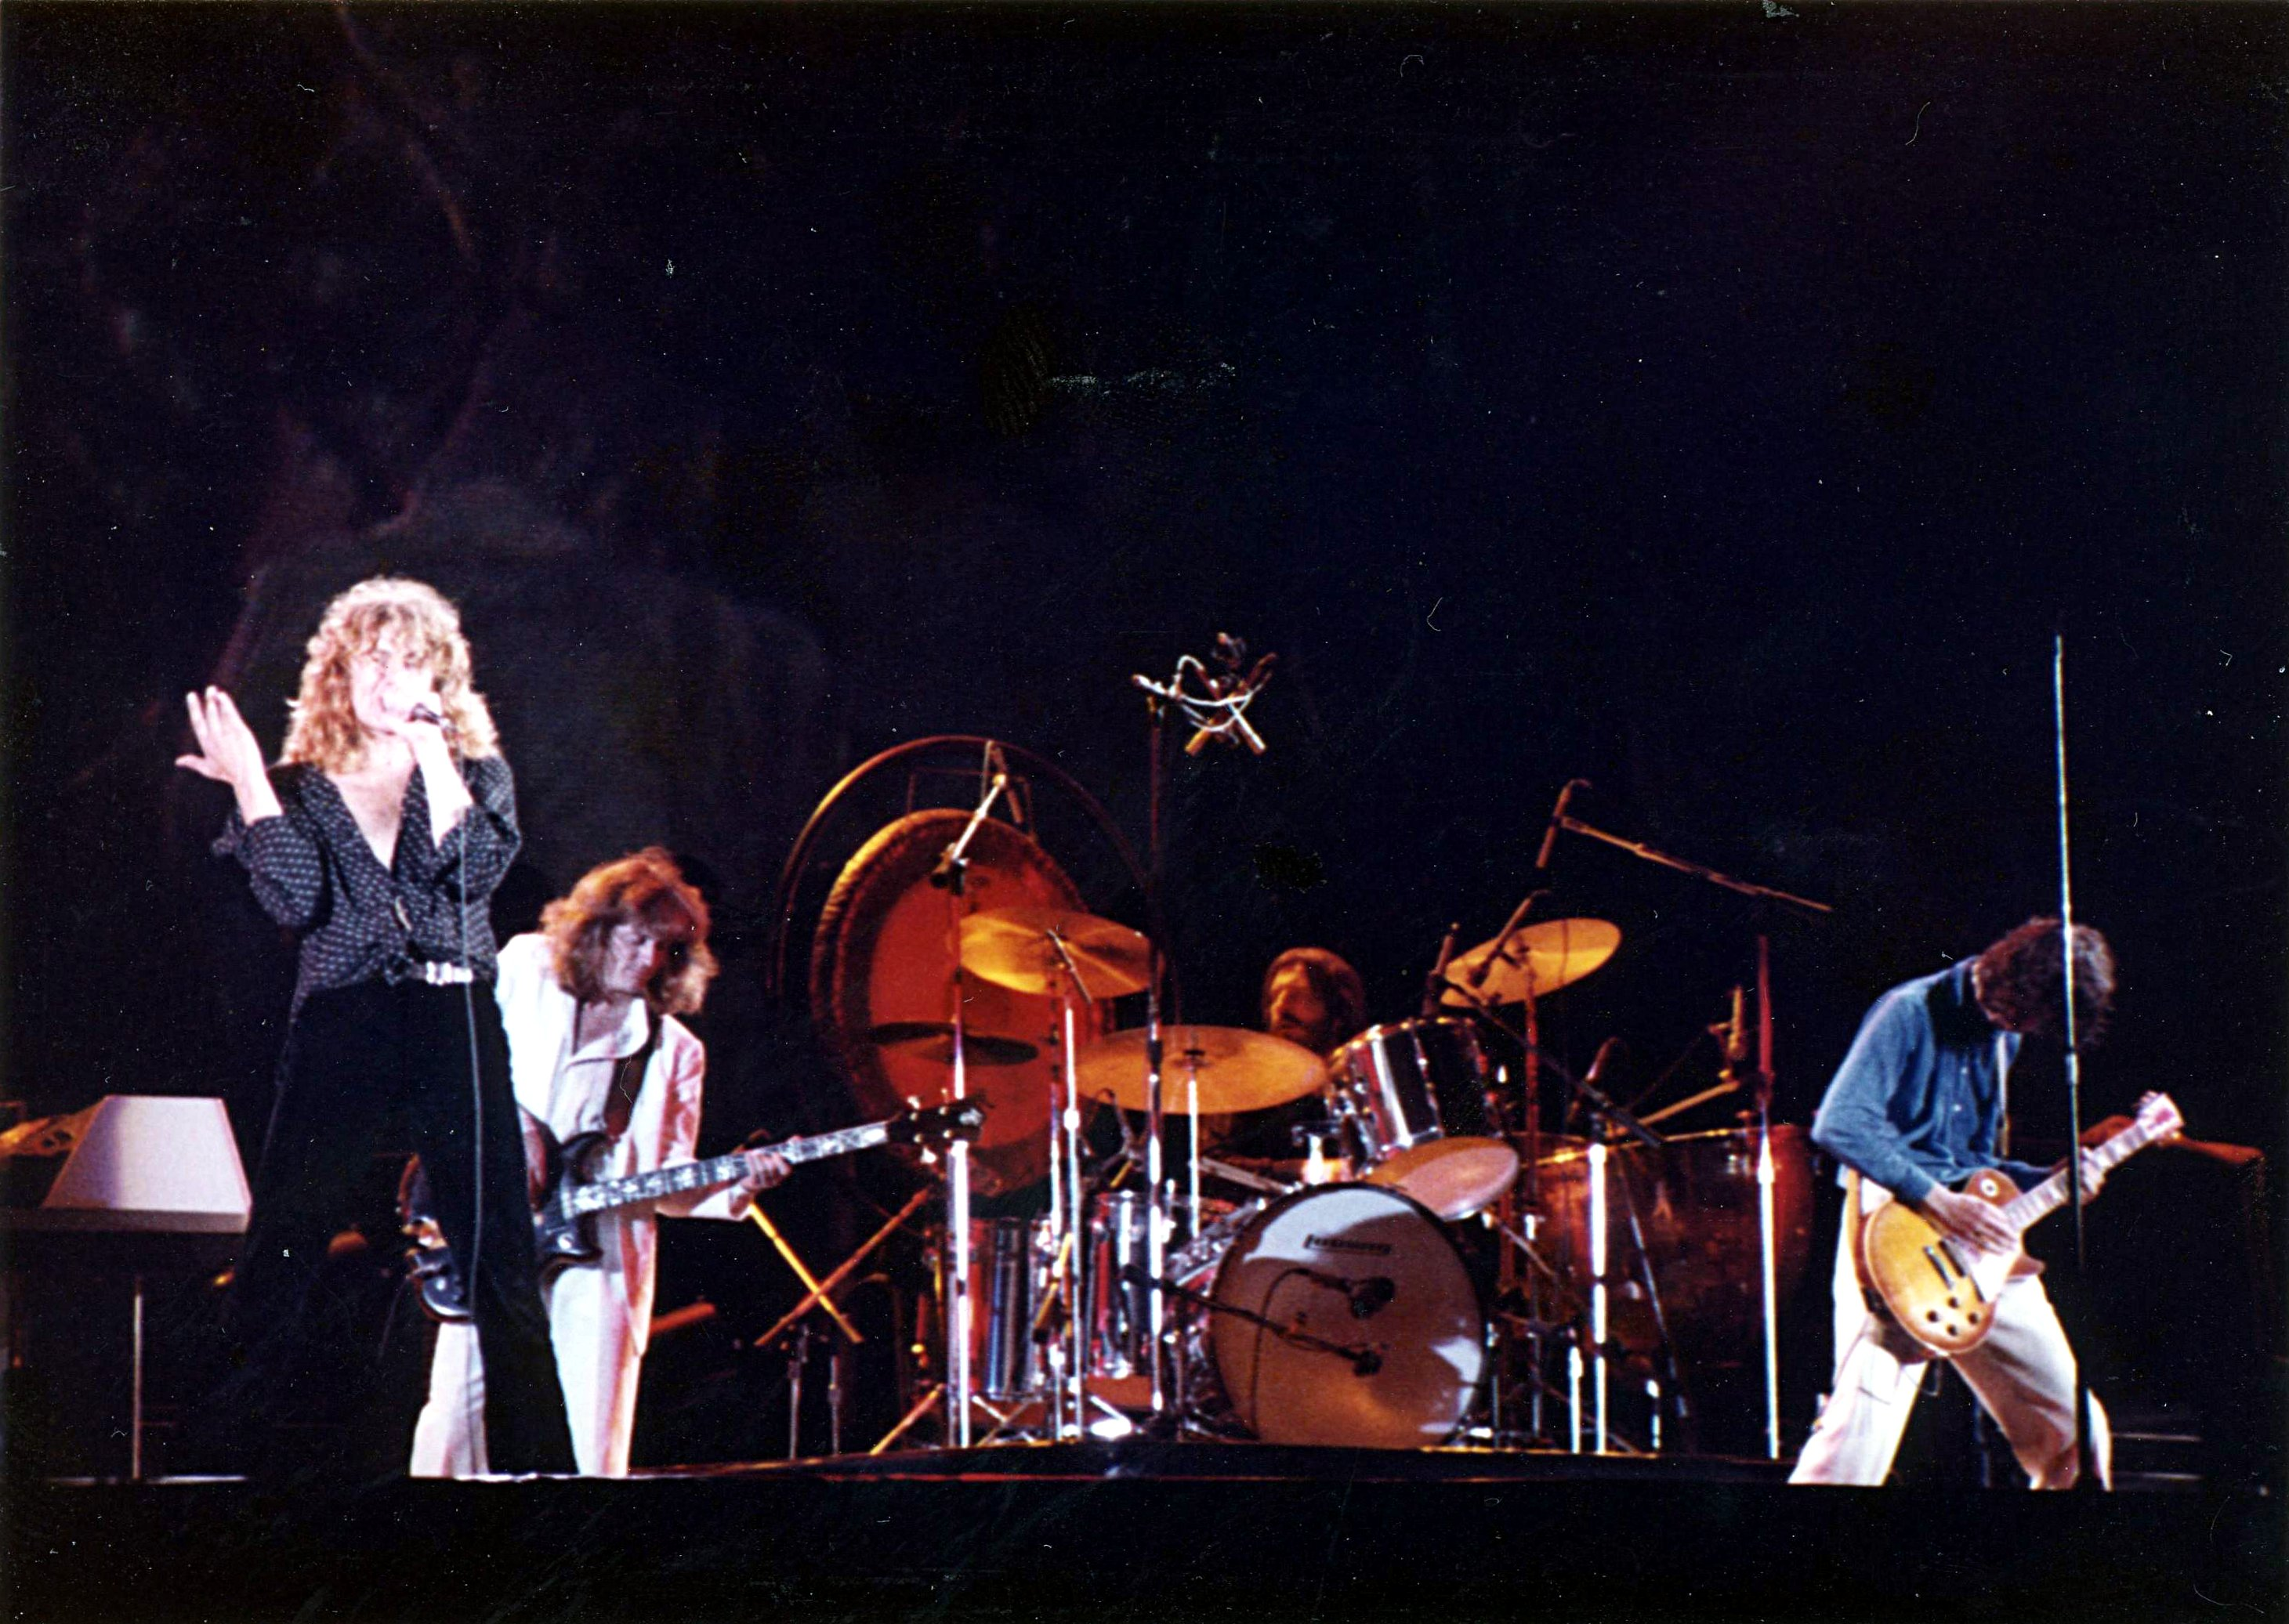 Snapshots Of Led Zeppelin At Knebworth August 4th 1979